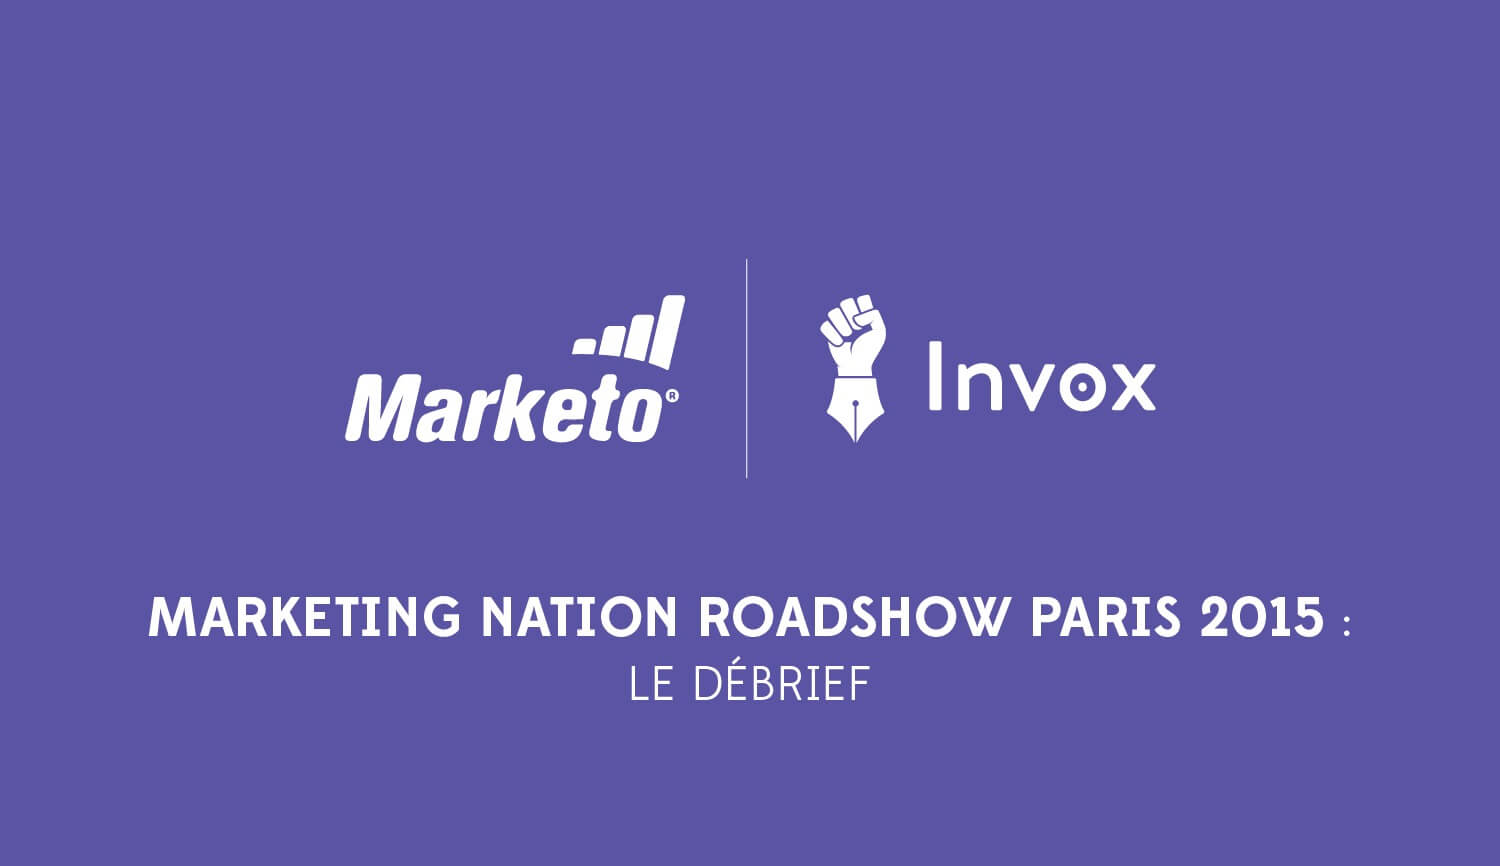 marketing-nation-roadshow-paris-2015-marketo-invox